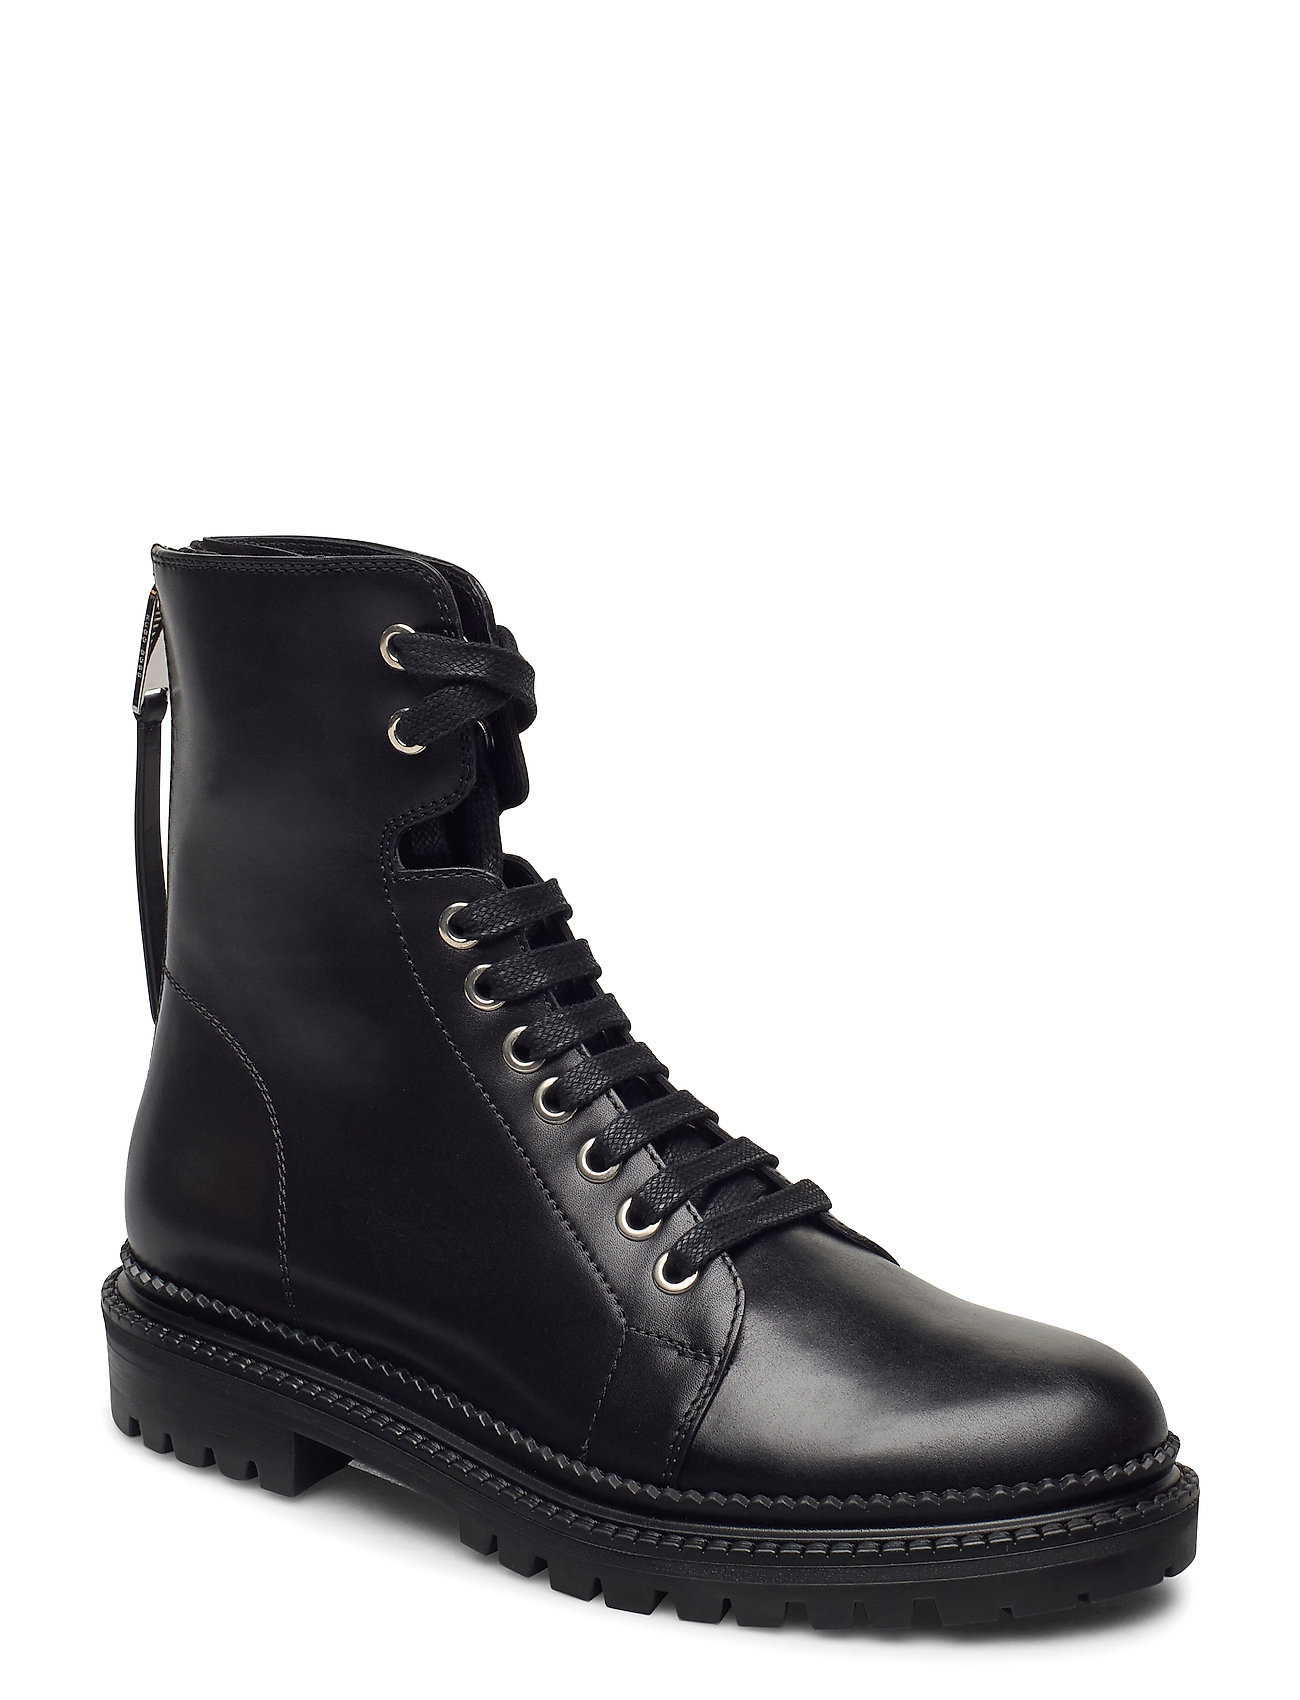 Image of Katlin Biker-C Shoes Boots Ankle Boots Ankle Boot - Flat Sort BOSS (3441399939)